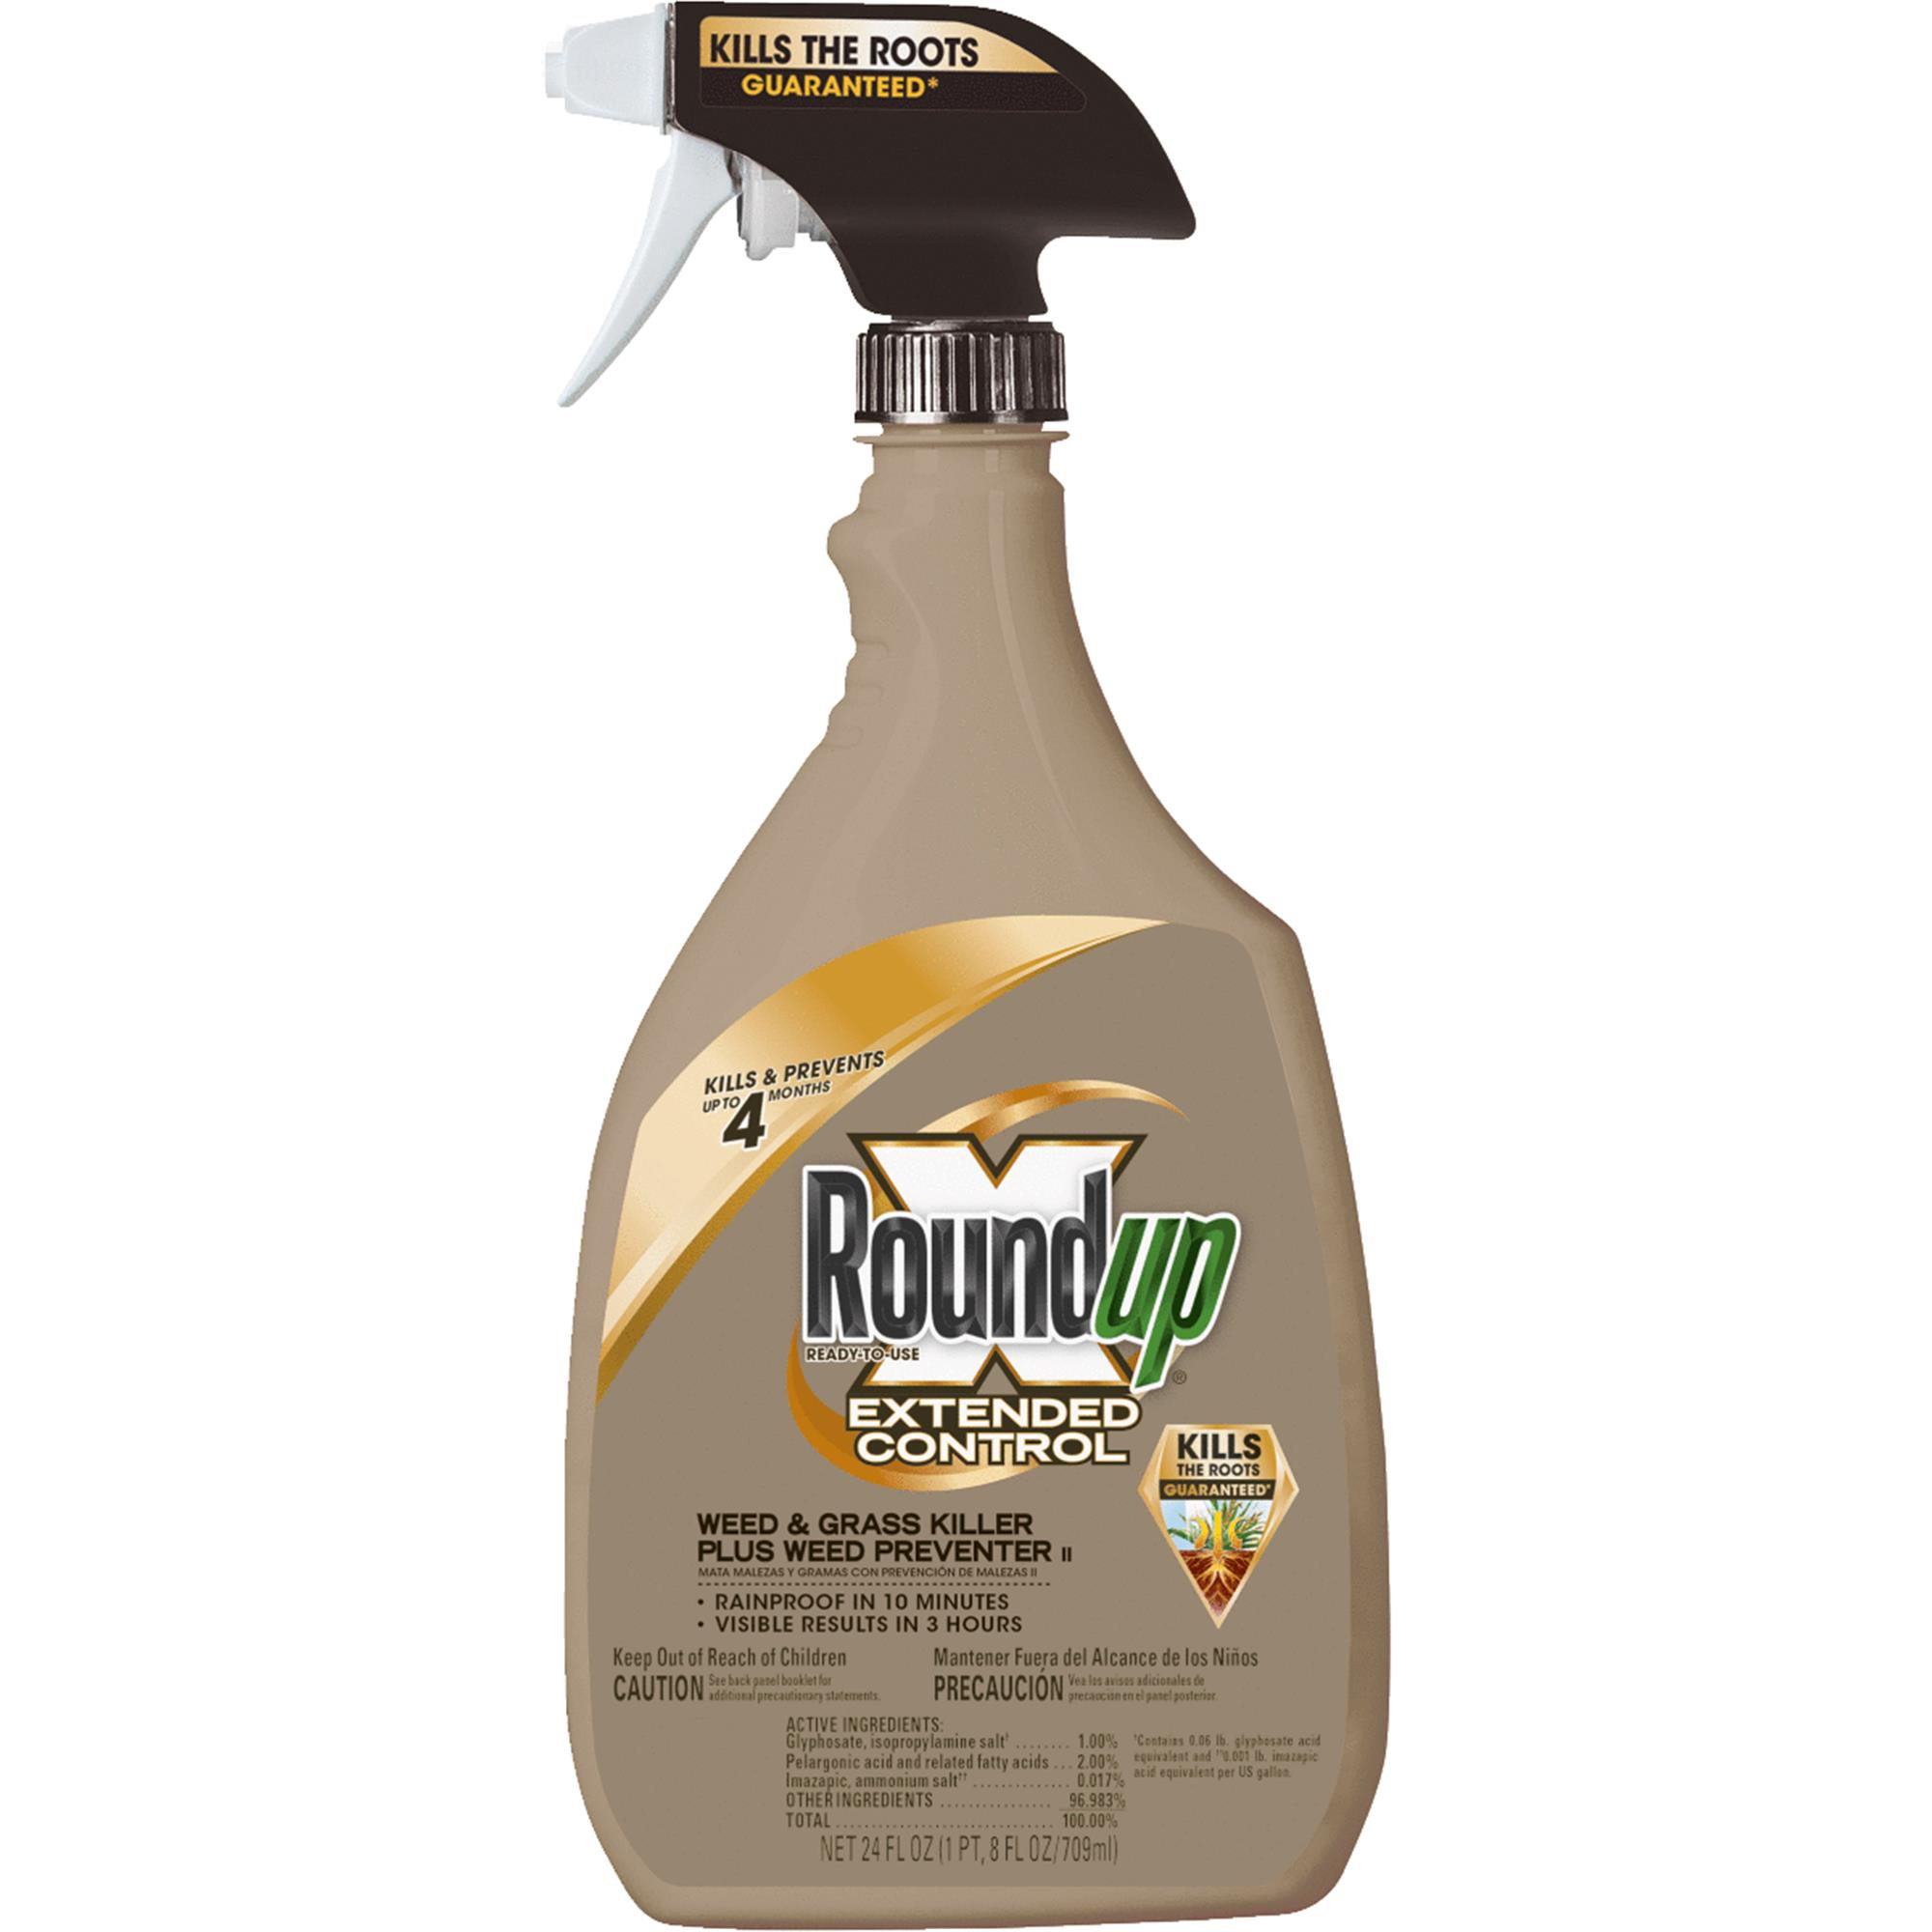 Roundup  Extended Control Plus Weed Preventer Weed & Grass Killer, 24 fl oz